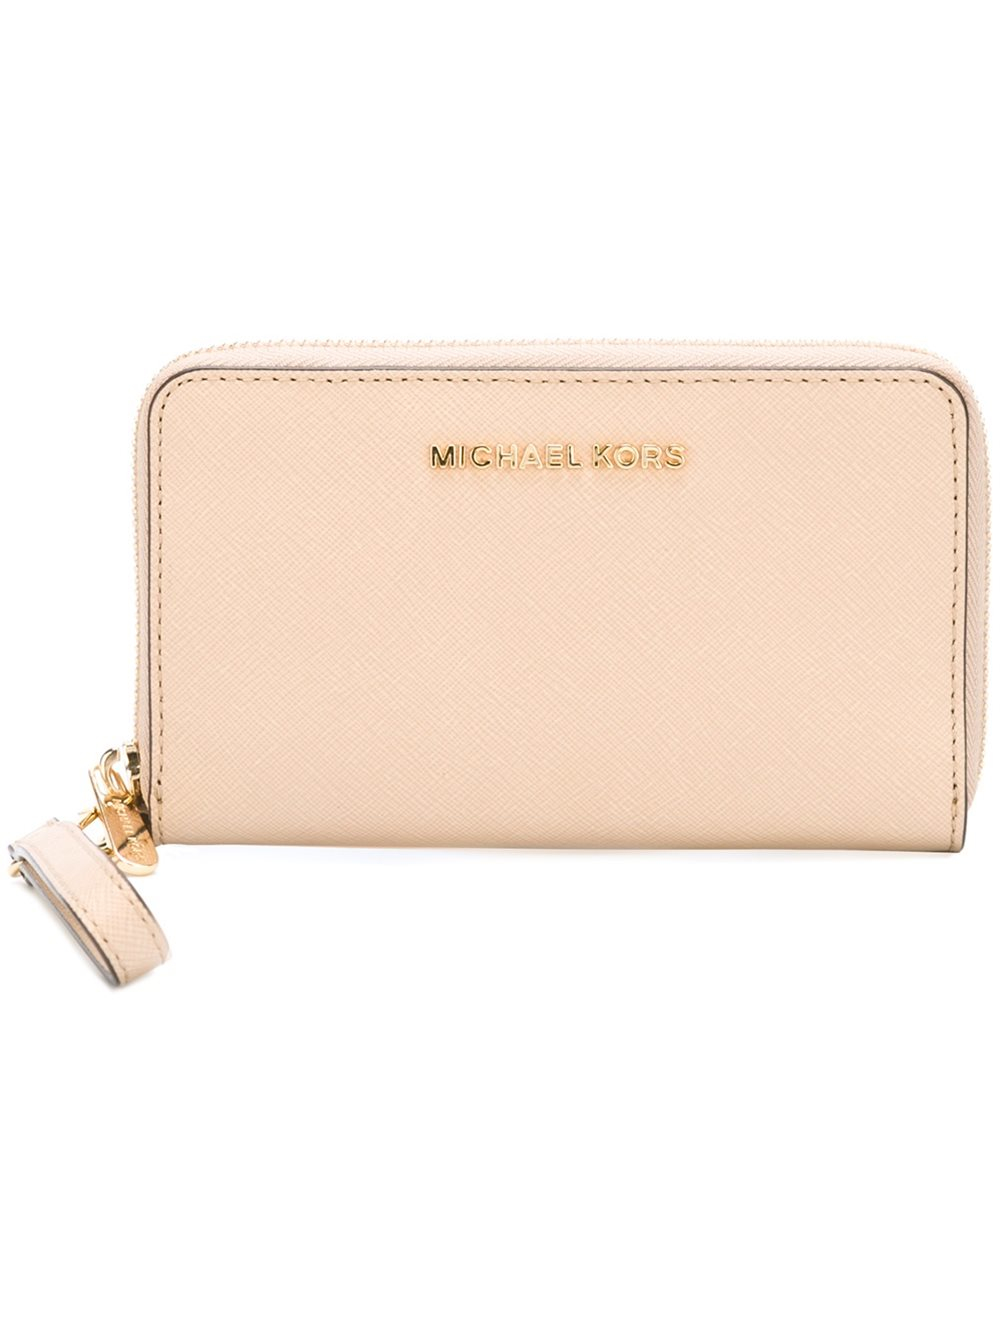 Michael Michael Kors Large Jet Set Travel Phone Wallet In Multicolor Nude -4149